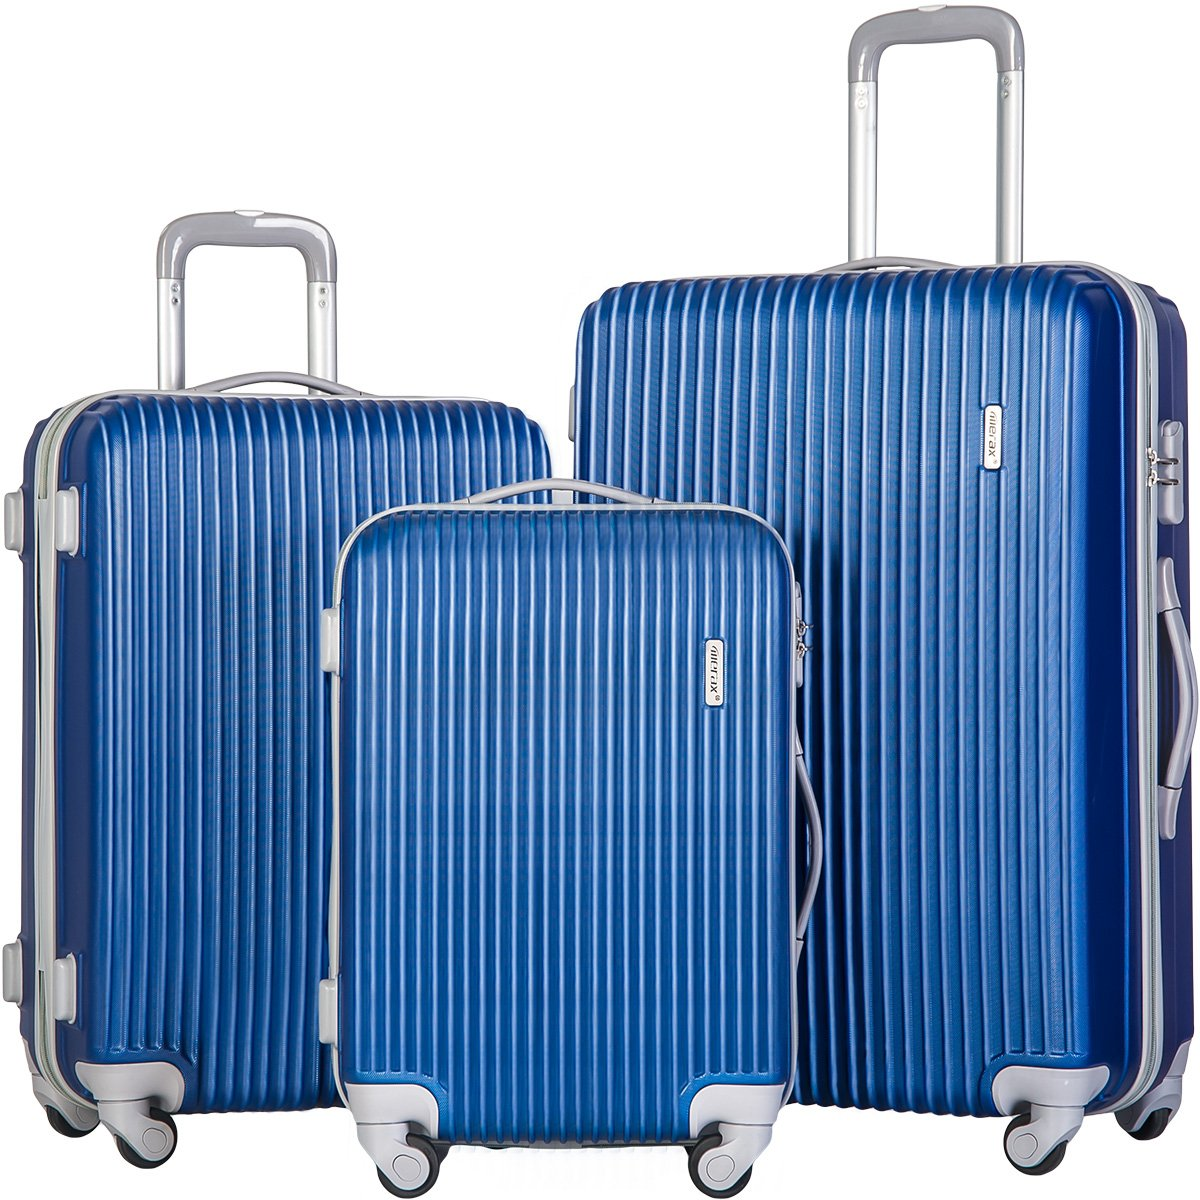 Merax 3 Piece Luggage Set Suitcase Spinner Hardshell Lightweight (Lake Blue.) by Merax